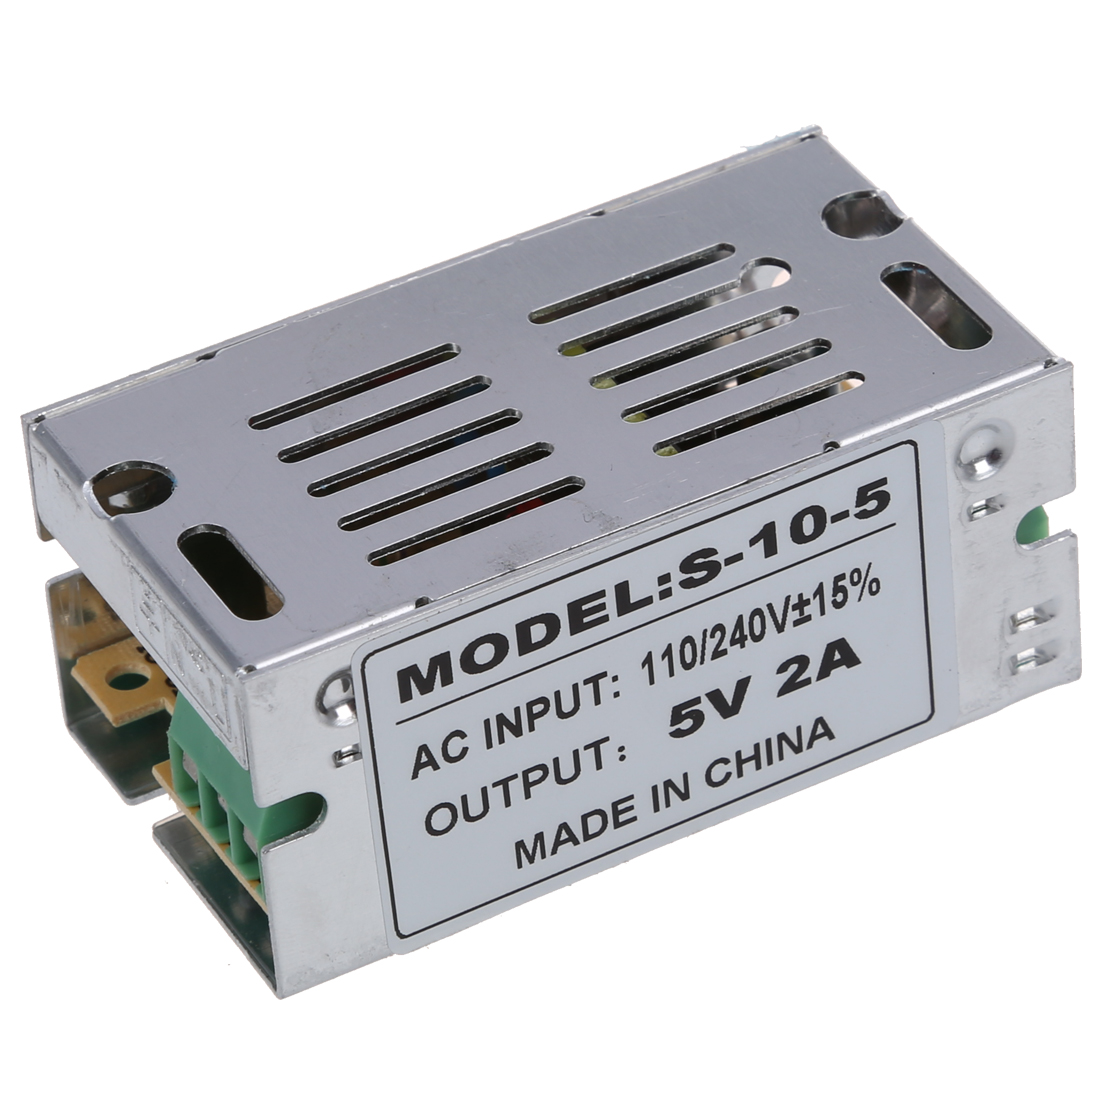 AC 110-240v to DC 5v Switching Power Supply Converter SA10-05 WS A9g7 for sale online